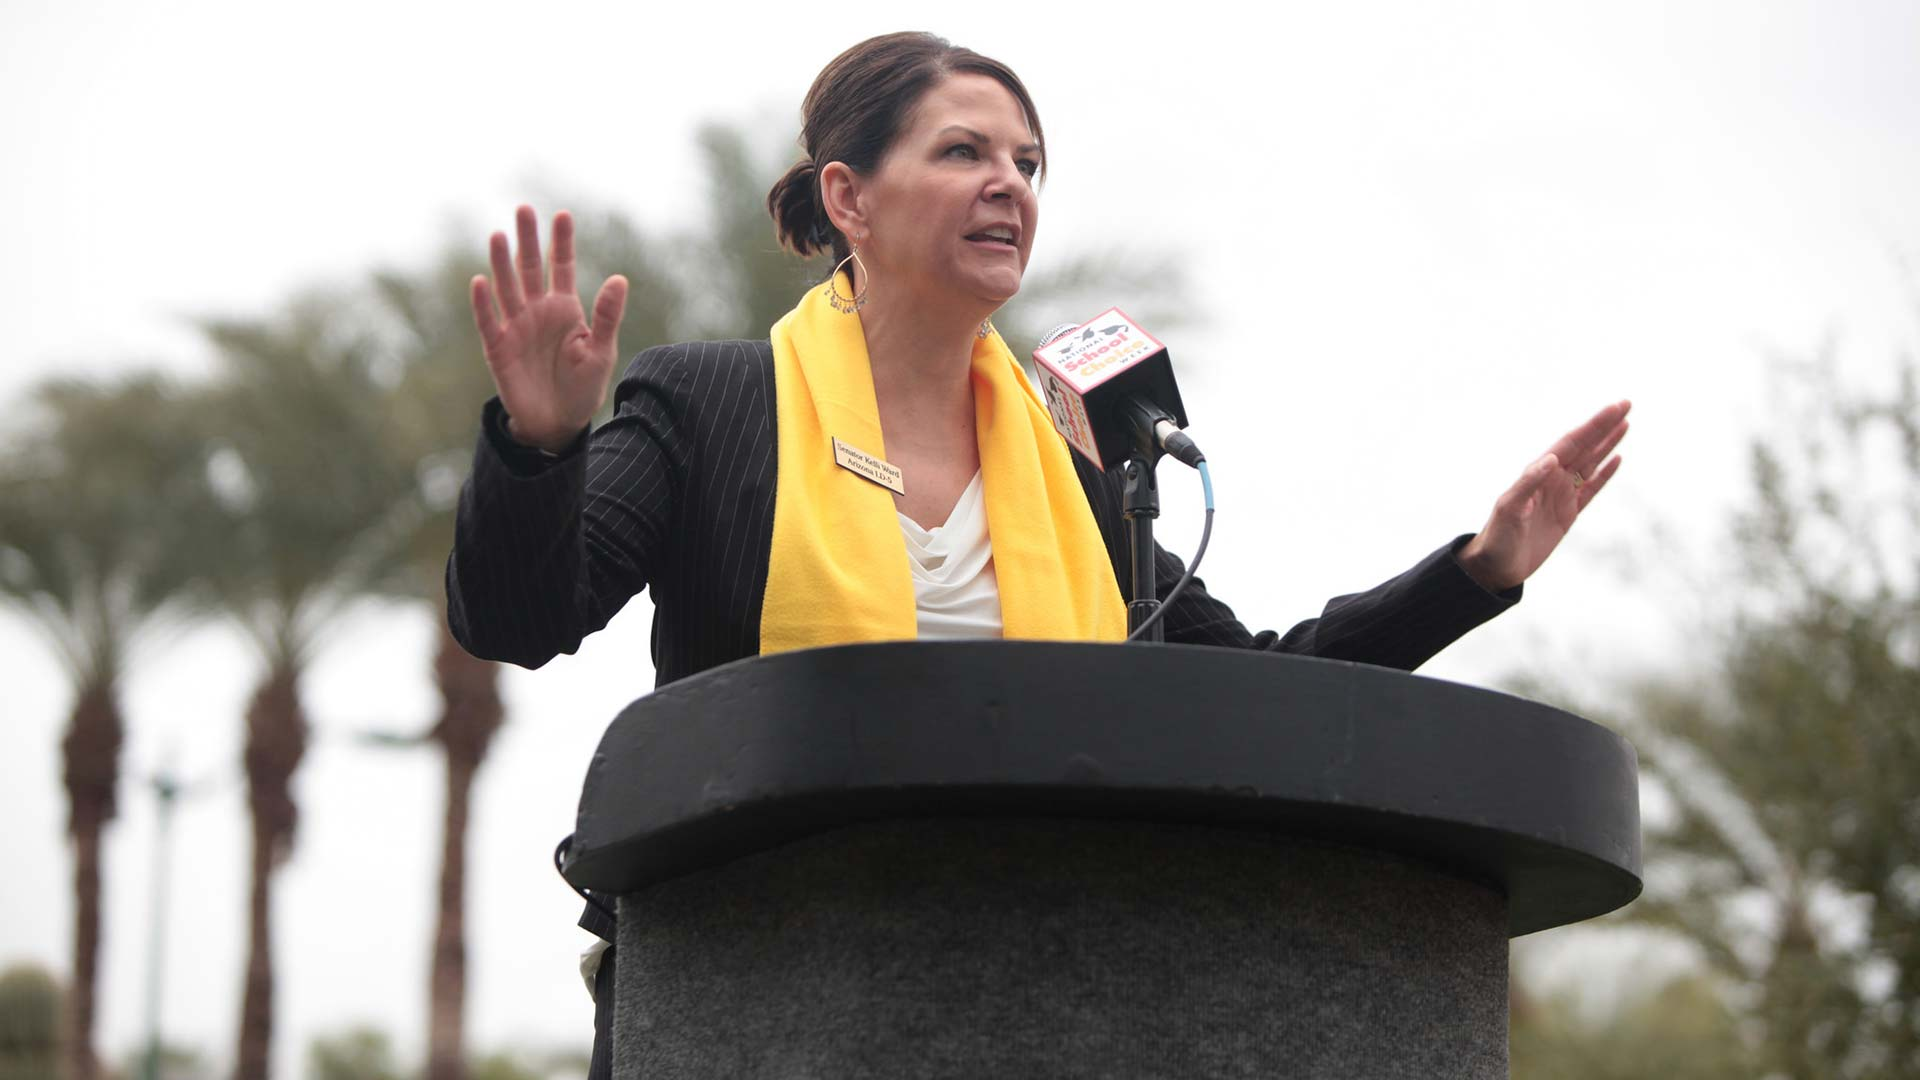 State Senator Kelli Ward speaking at the 2015 School Choice Week rally at the Arizona State Capitol building in Phoenix, Arizona.